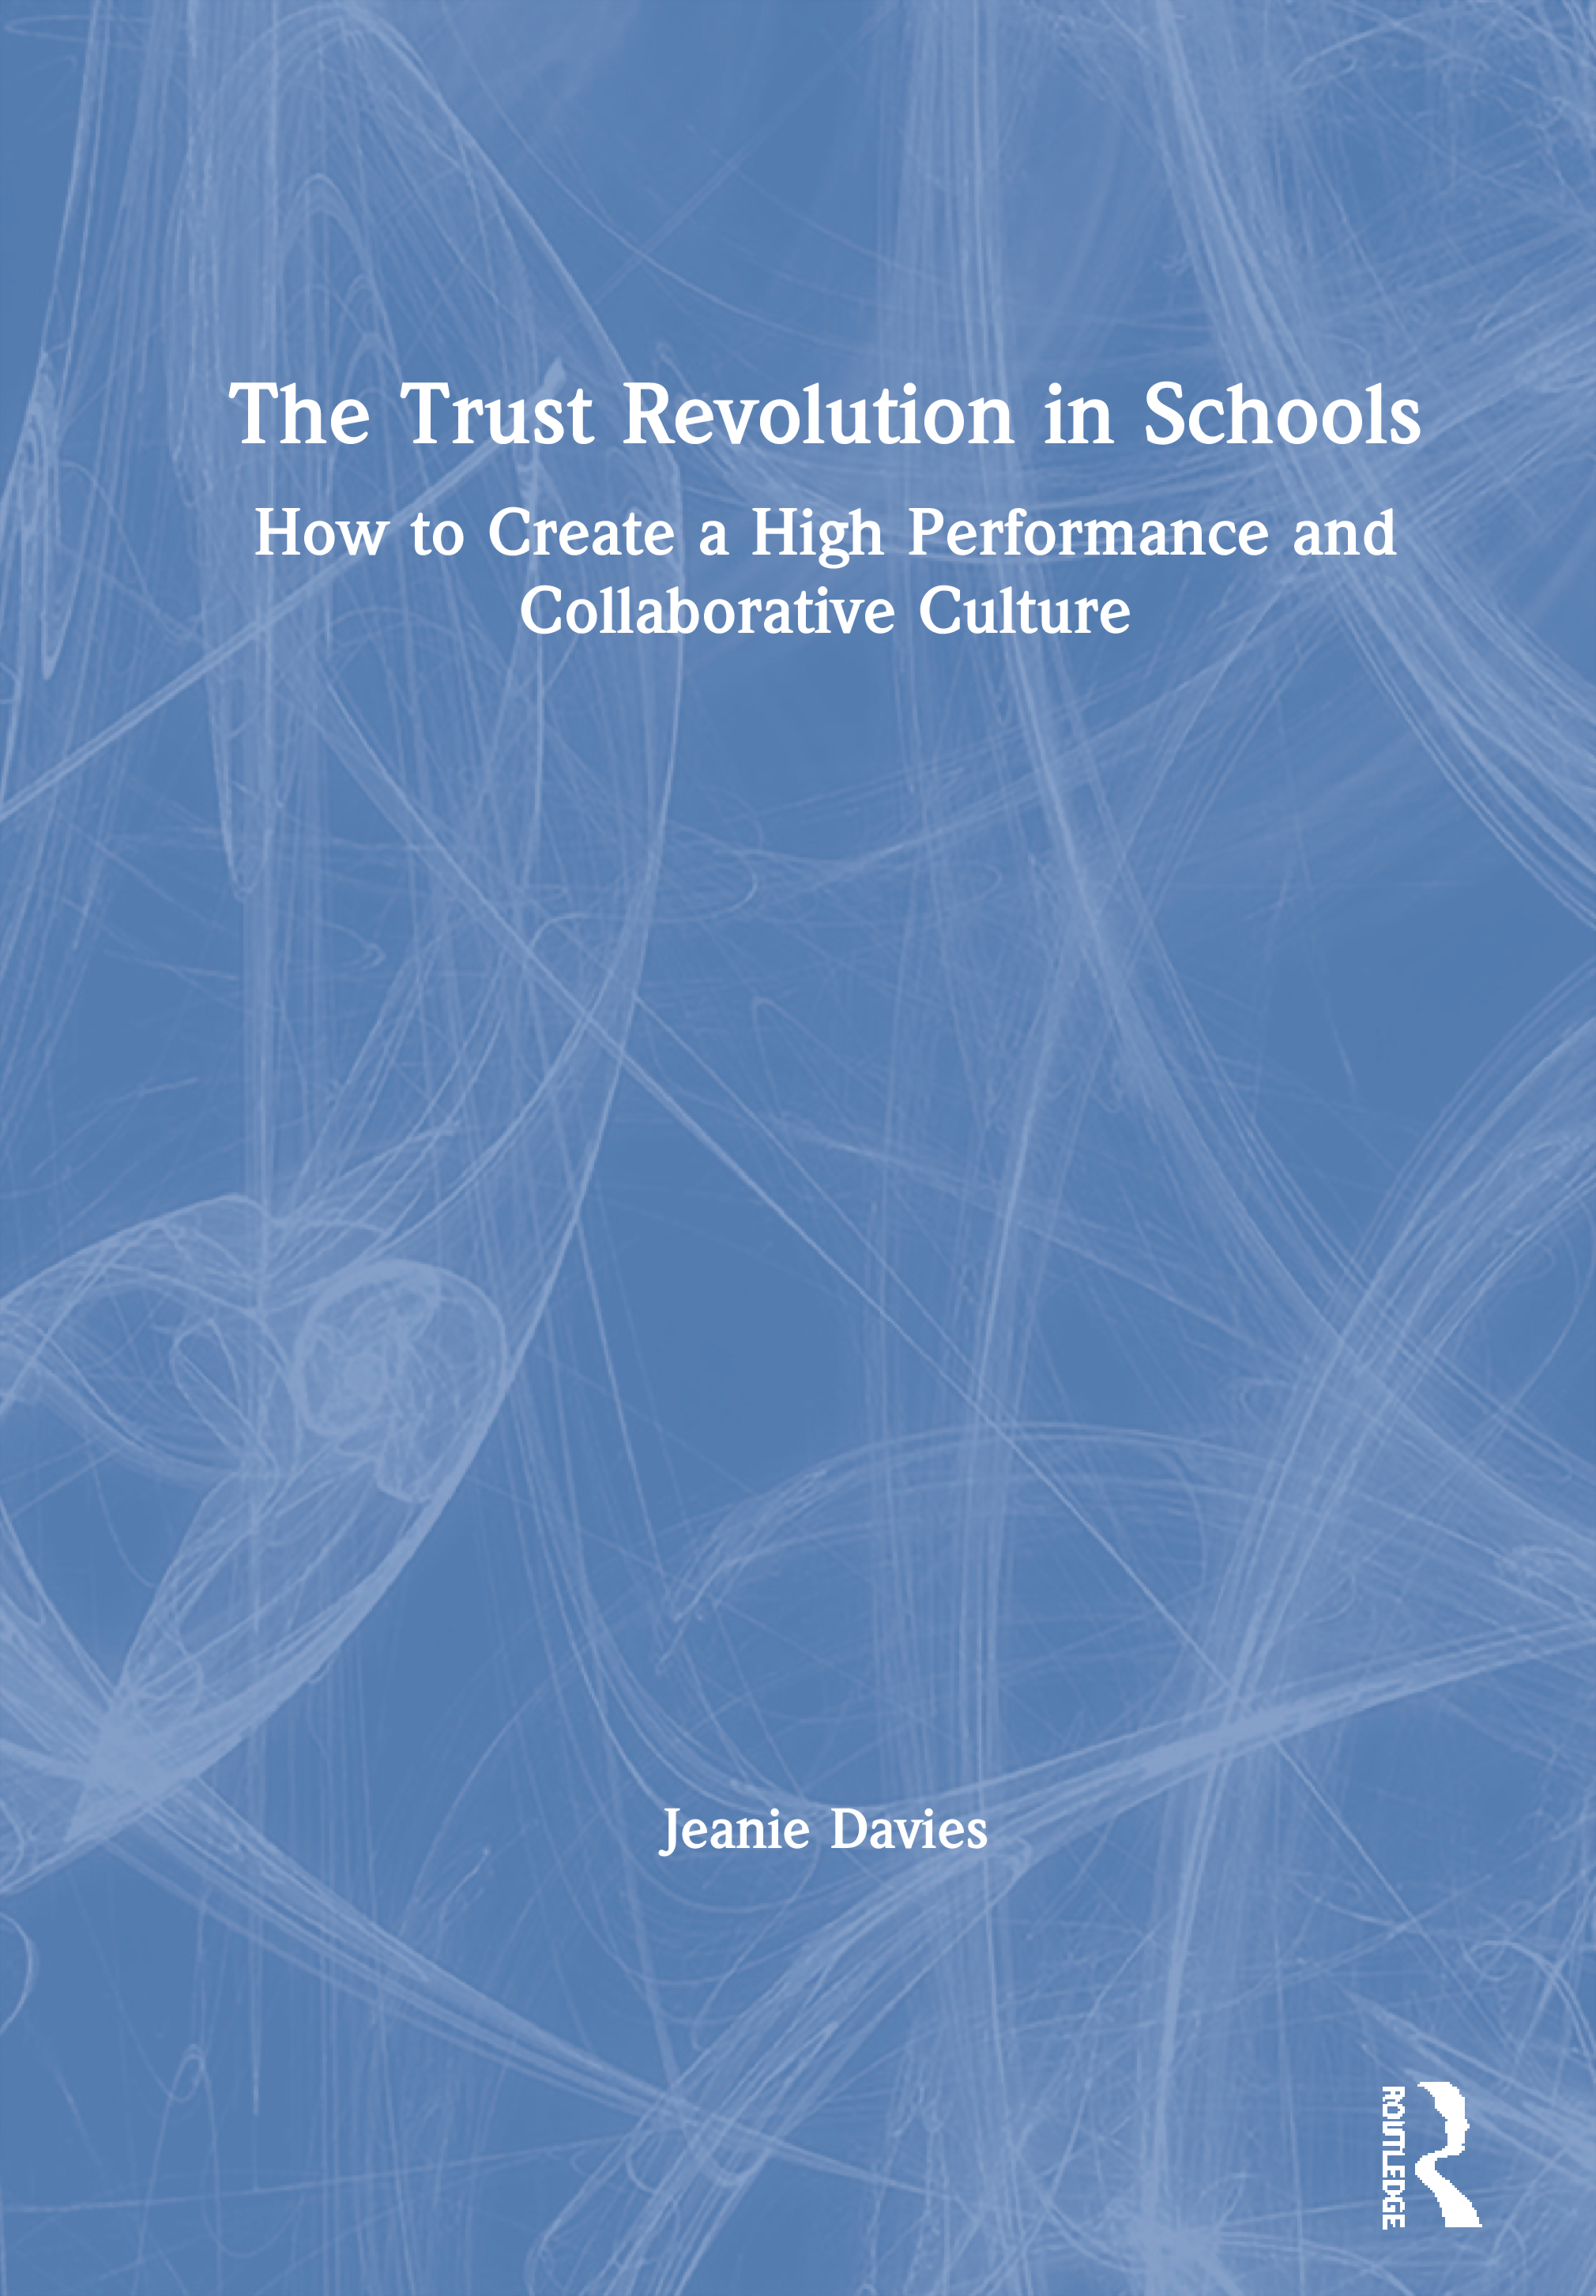 The Trust Revolution in Schools: How to Create a High Performance and Collaborative Culture book cover